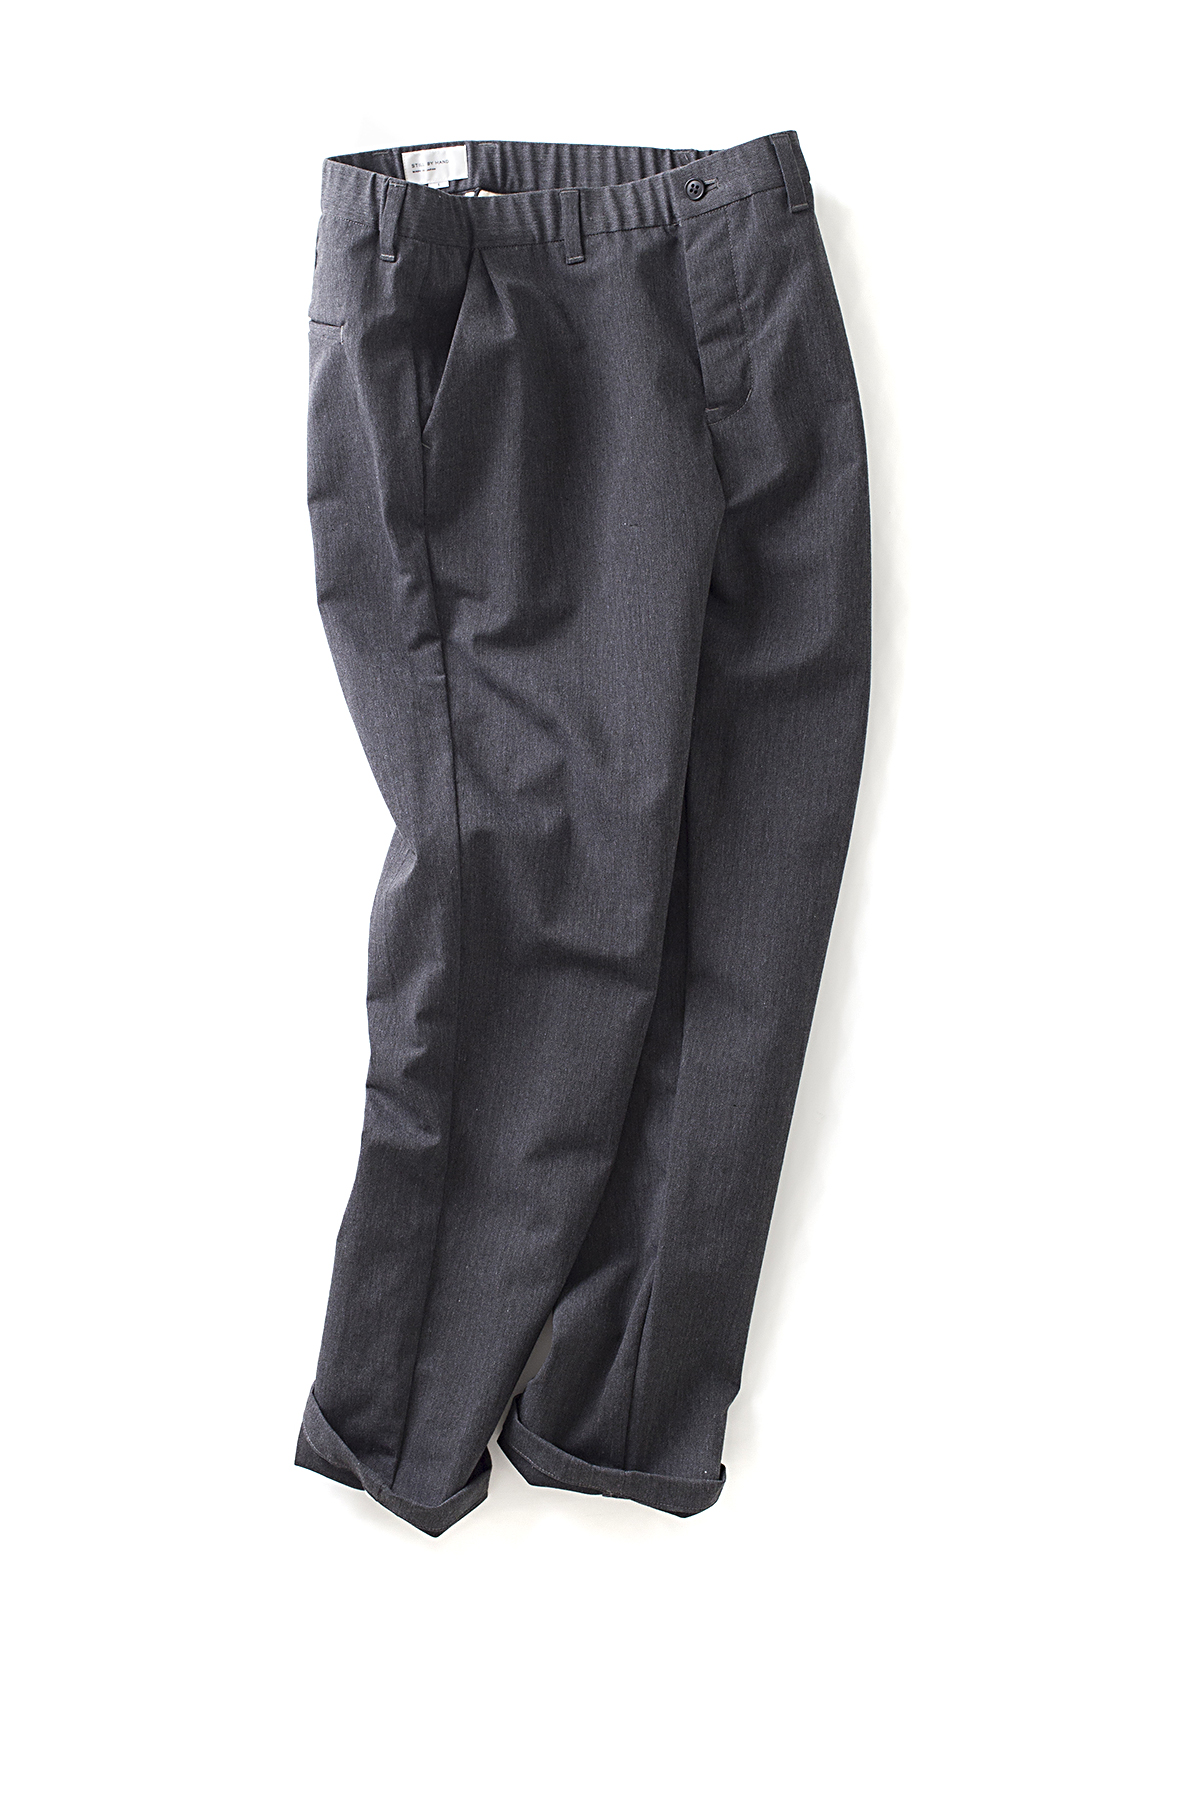 Still By Hand : Urethane Inner Coating Pants (Grey)